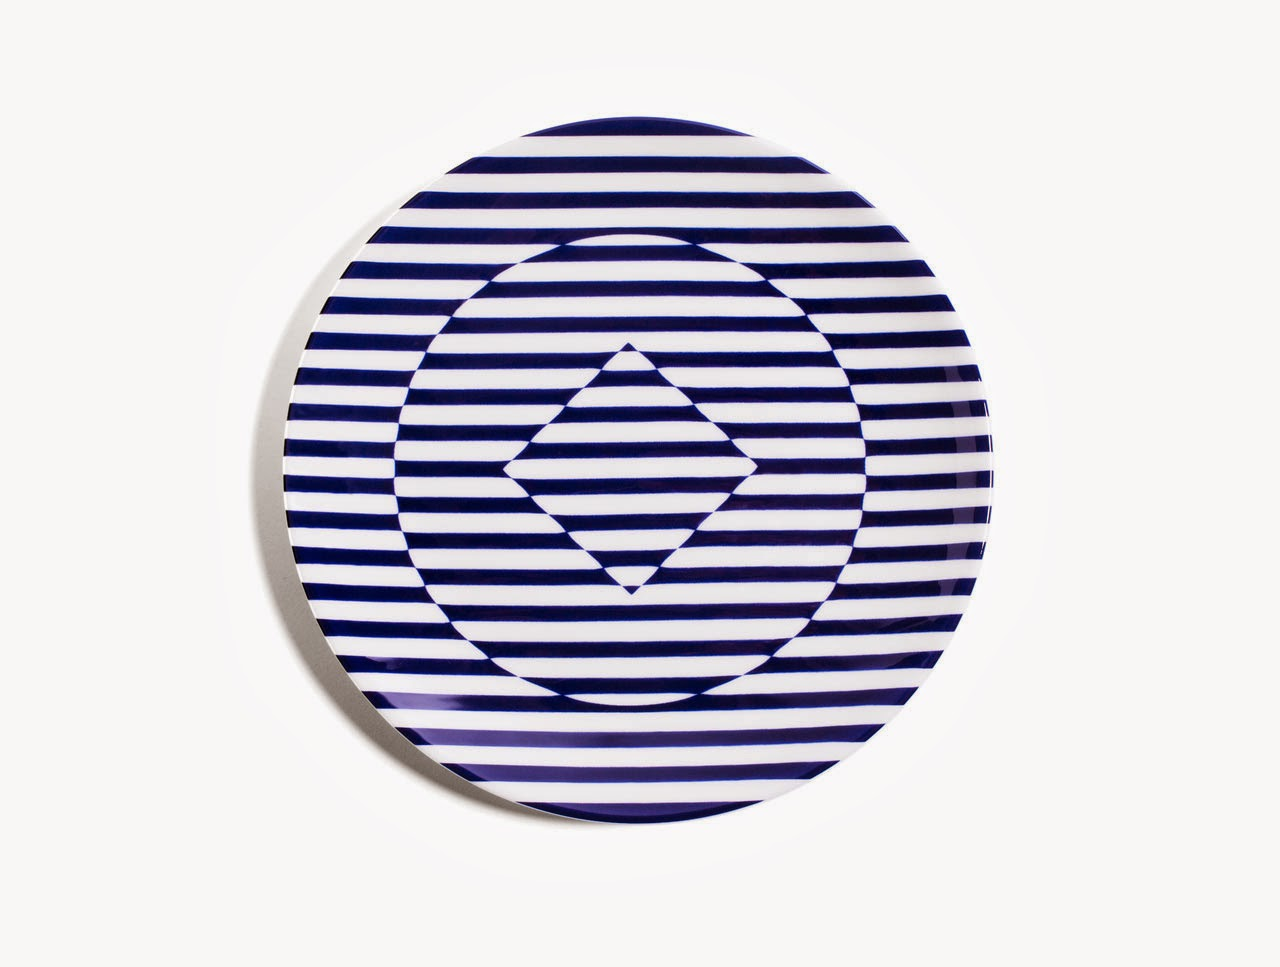 05-Richard-Brendon-Patternity-Reason-Dinnerware-www-designstack-co